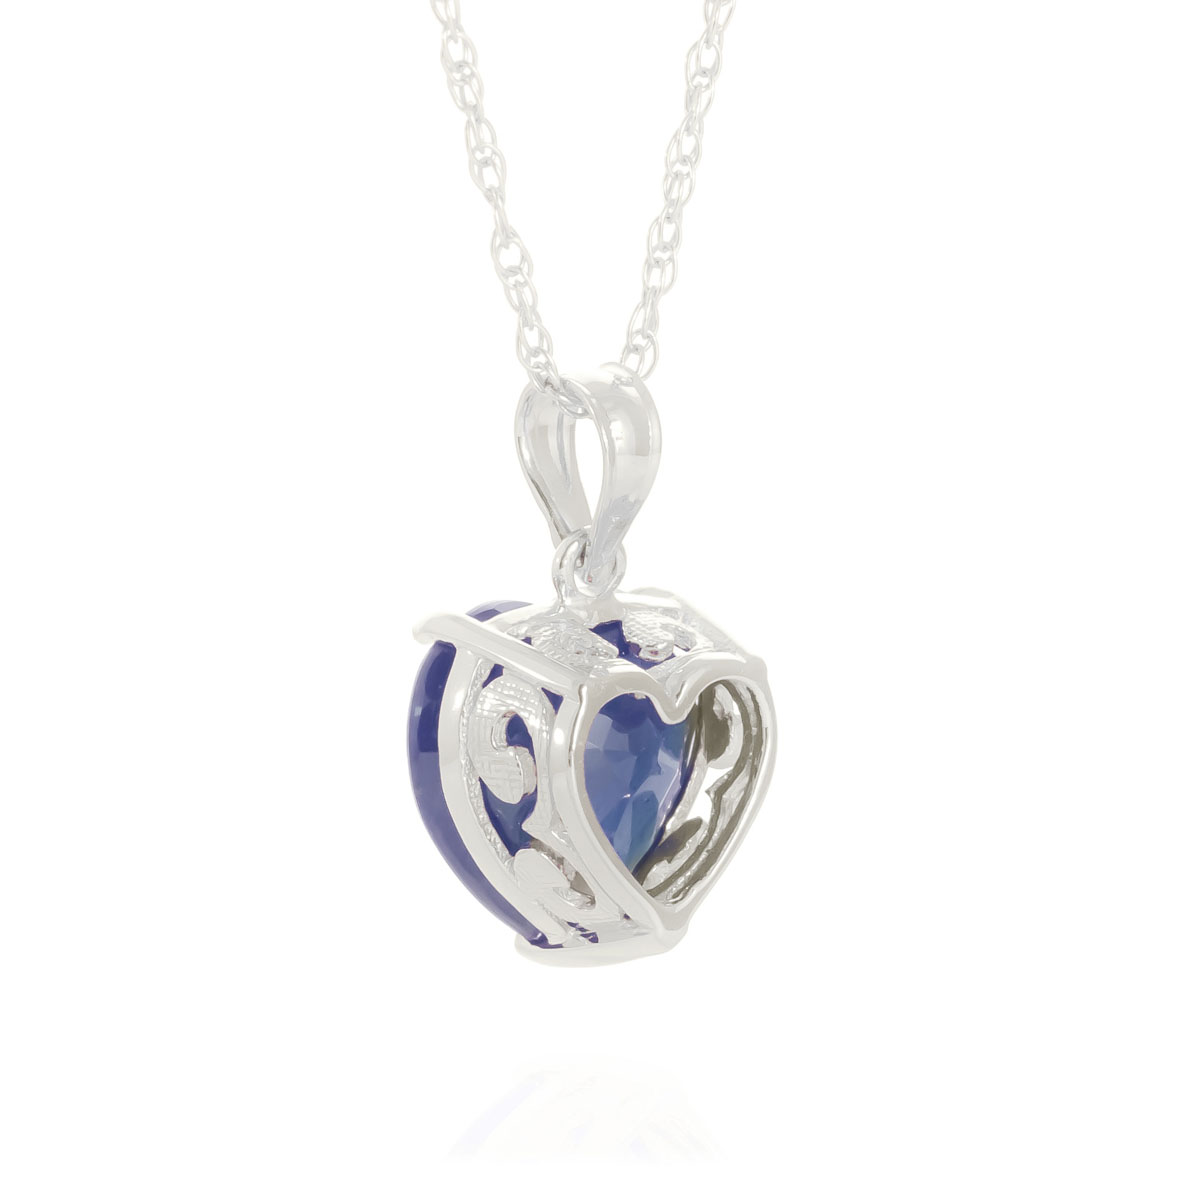 Sapphire large heart pendant necklace 43 ct in 9ct white gold sapphire large heart pendant necklace 43 ct in 9ct white gold mozeypictures Gallery